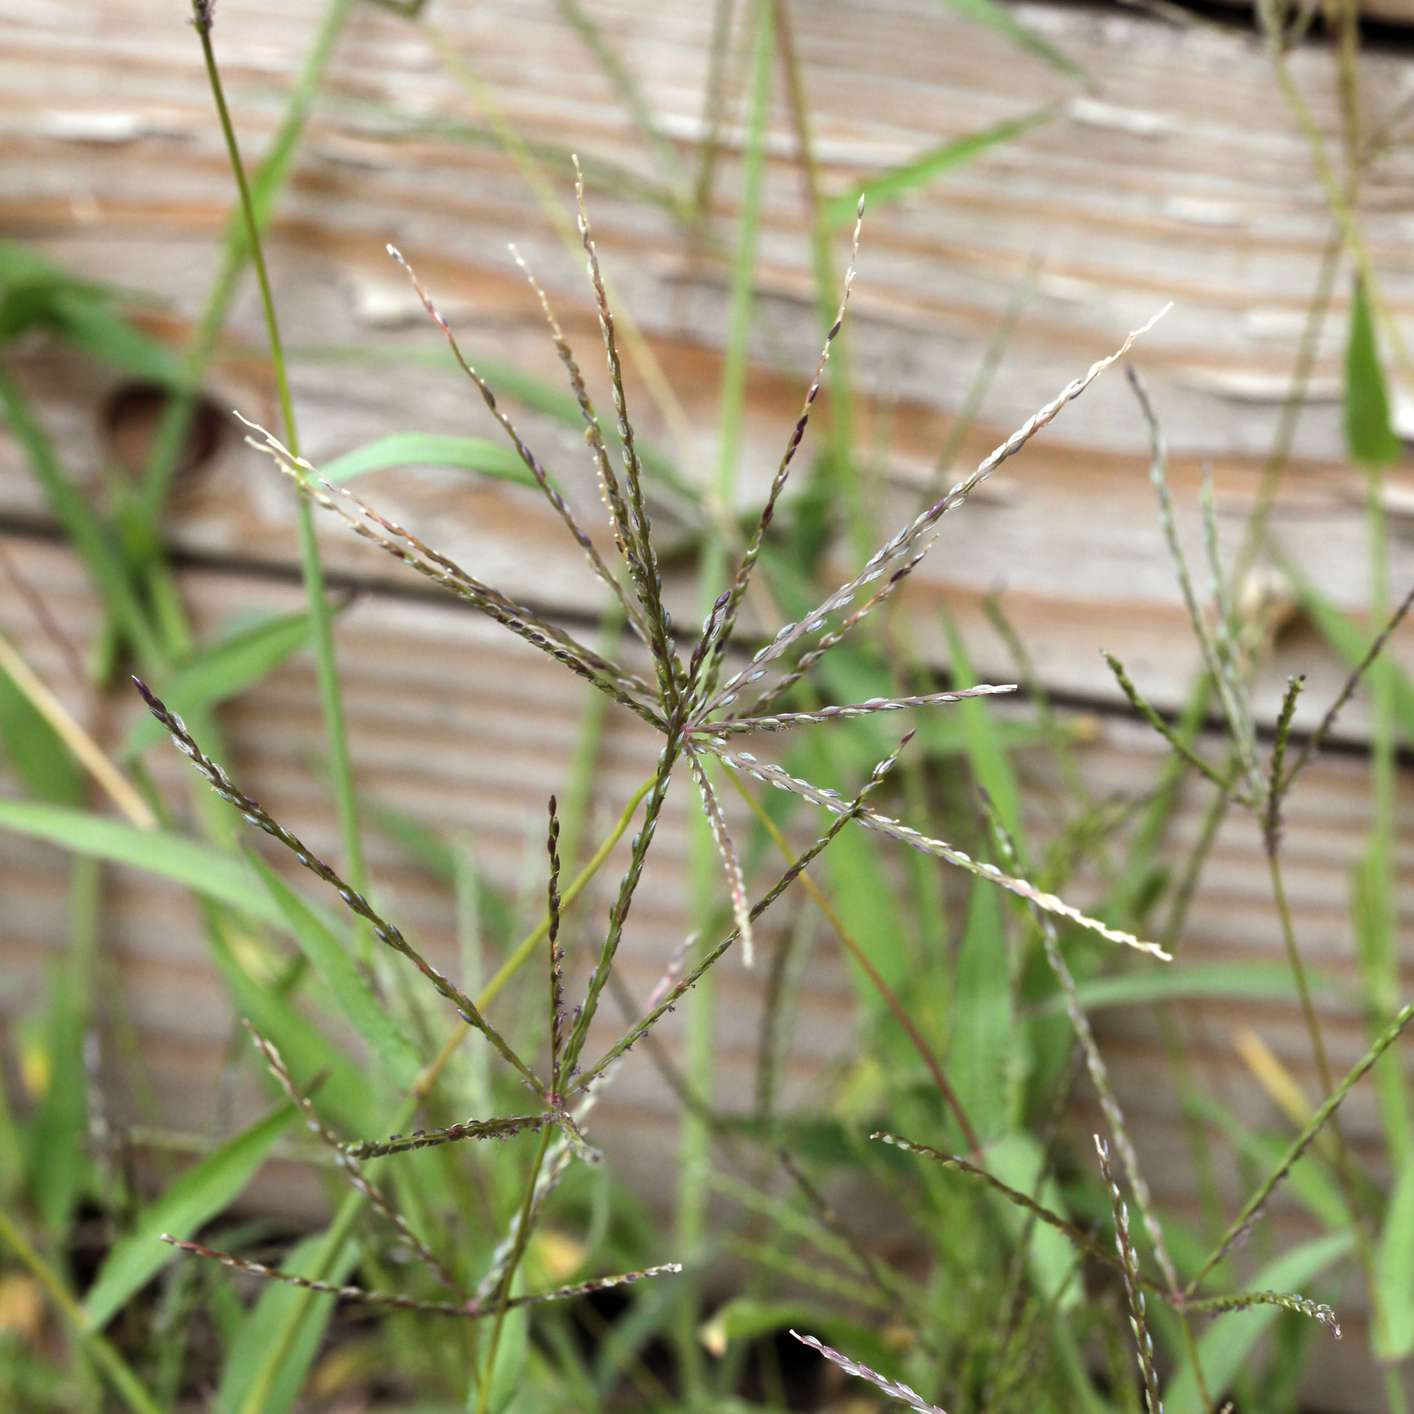 17 Common Types Of Weeds